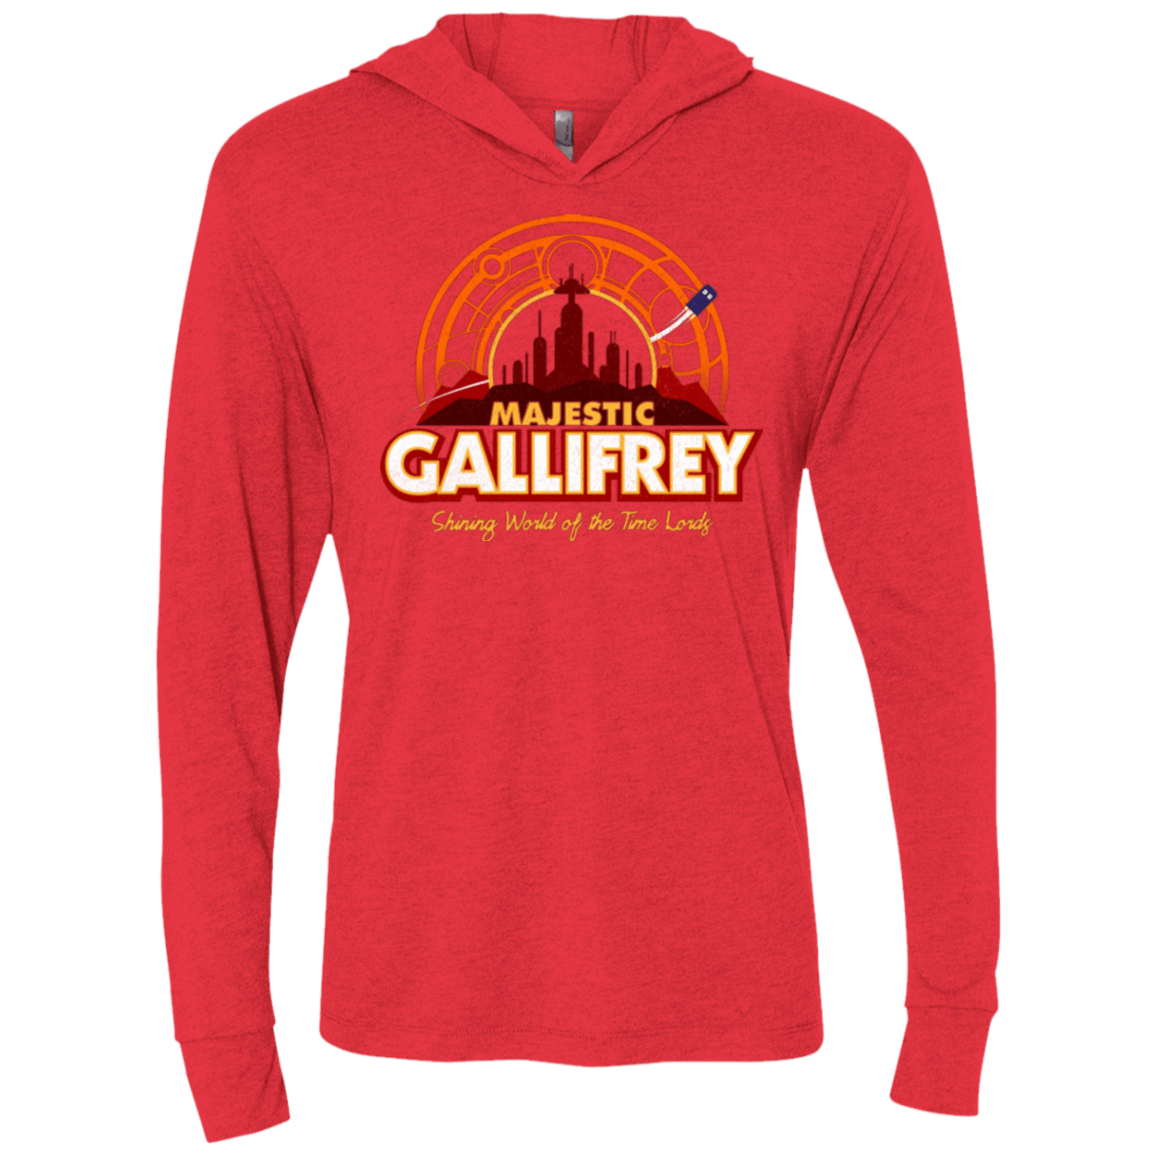 T-Shirts Vintage Red / X-Small Majestic Gallifrey Triblend Long Sleeve Hoodie Tee